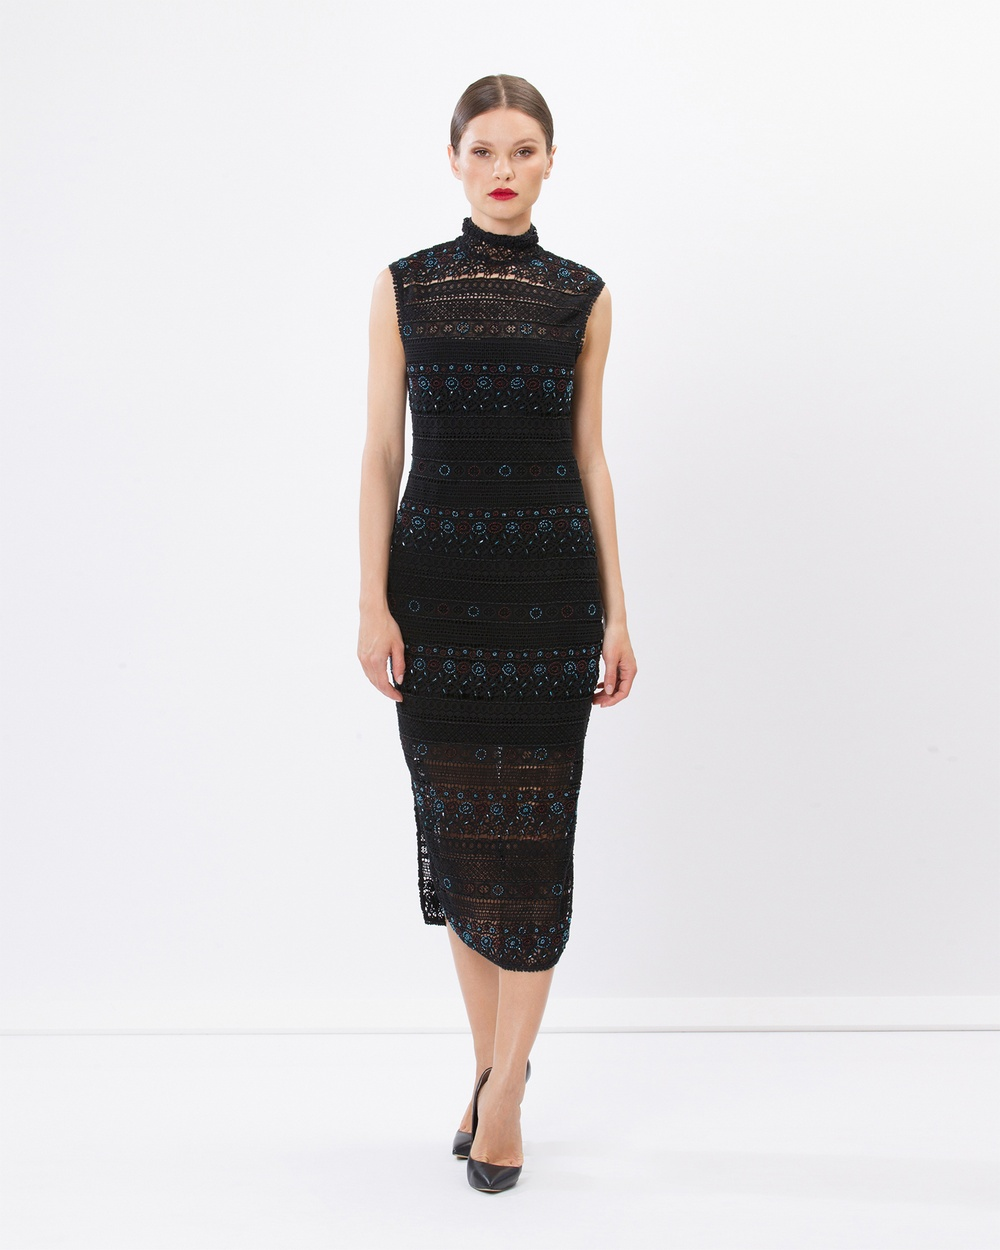 SIYONA Rihanna Lace Beaded Dress Dresses Black Rihanna Lace Beaded Dress